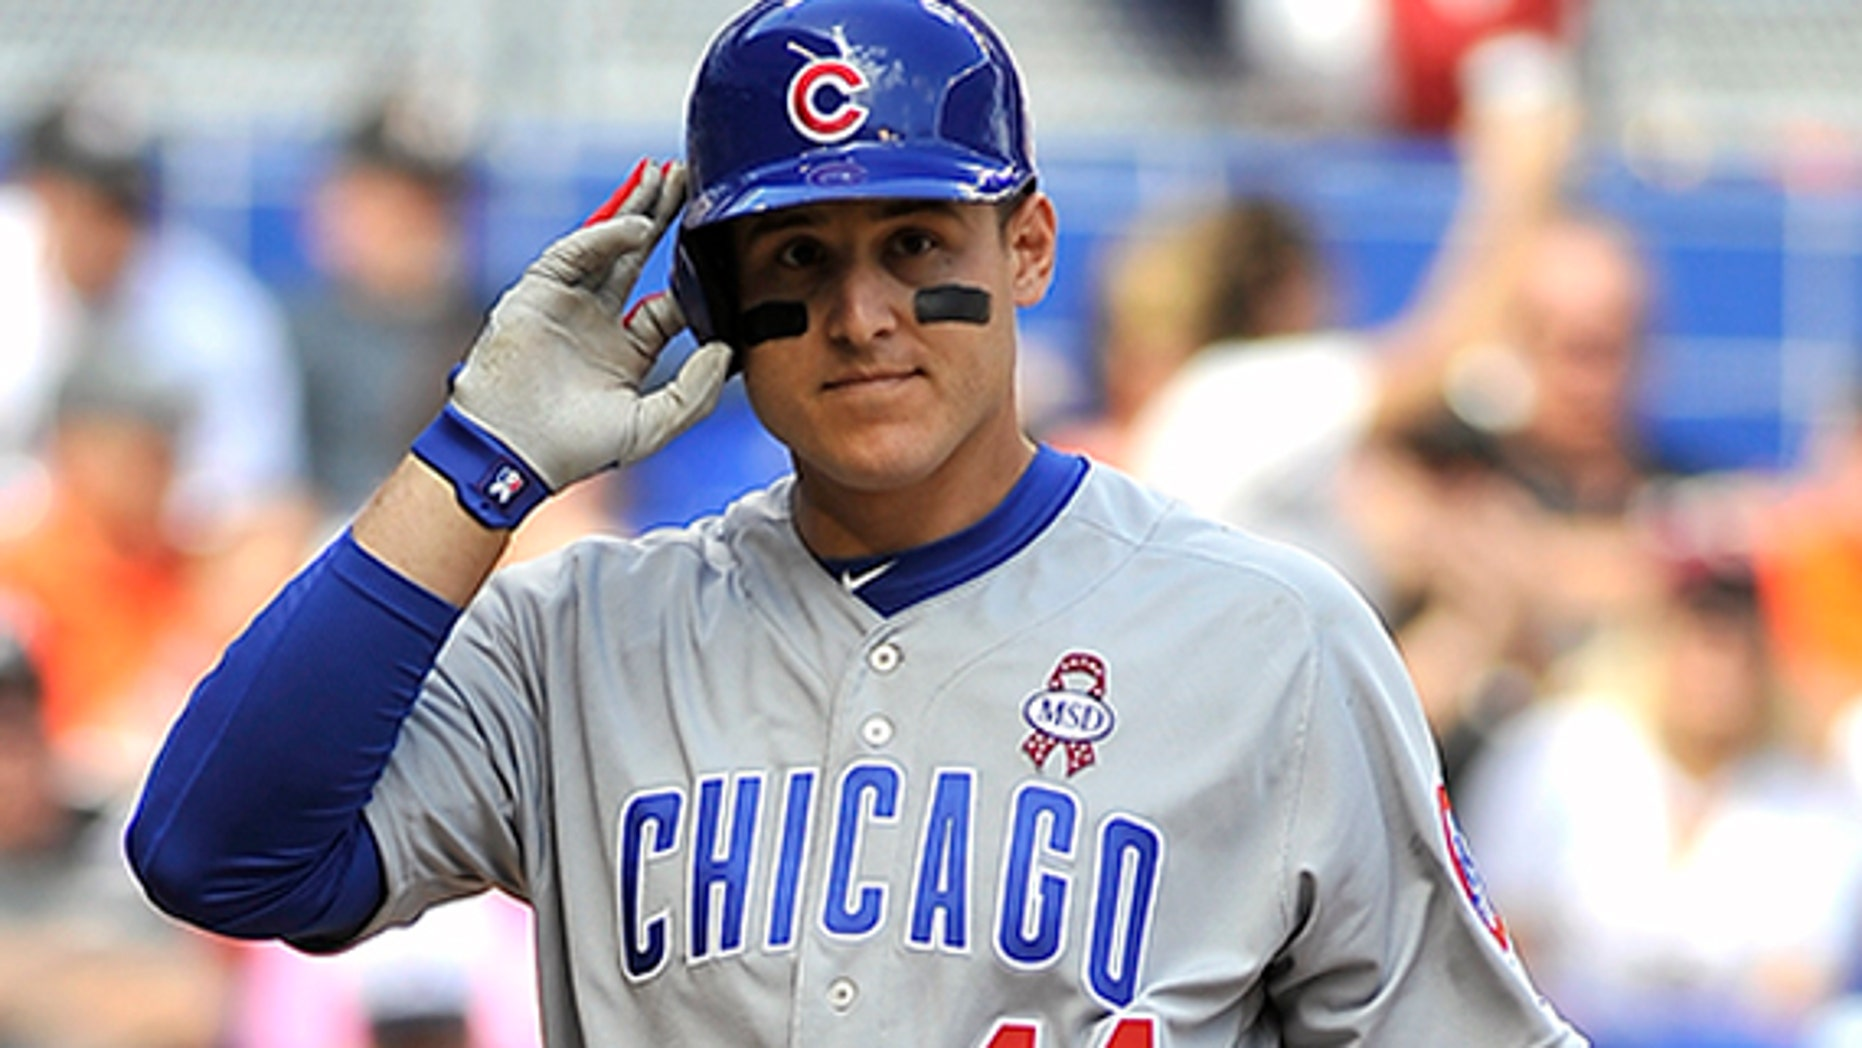 Anthony Rizzo, an alumnus of Marjory Stoneman Douglas High School, went 1-for-4 with a home run against the Marlins Thursday.